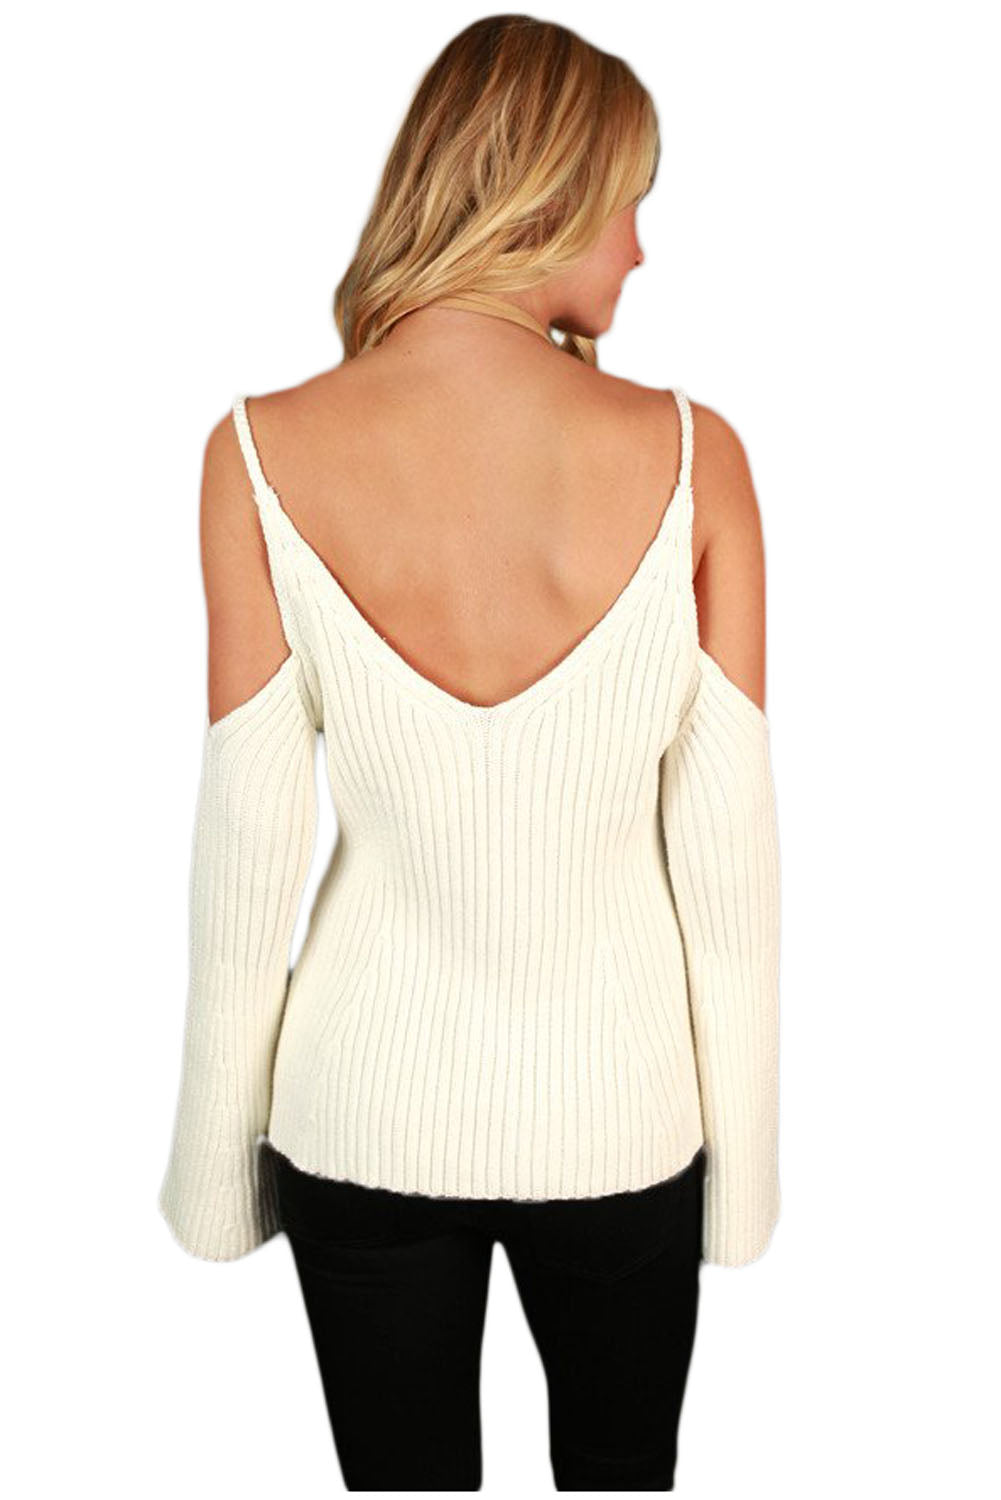 Her Fashion V Neckline Trendy Bell Sleeve Cute White Sweater